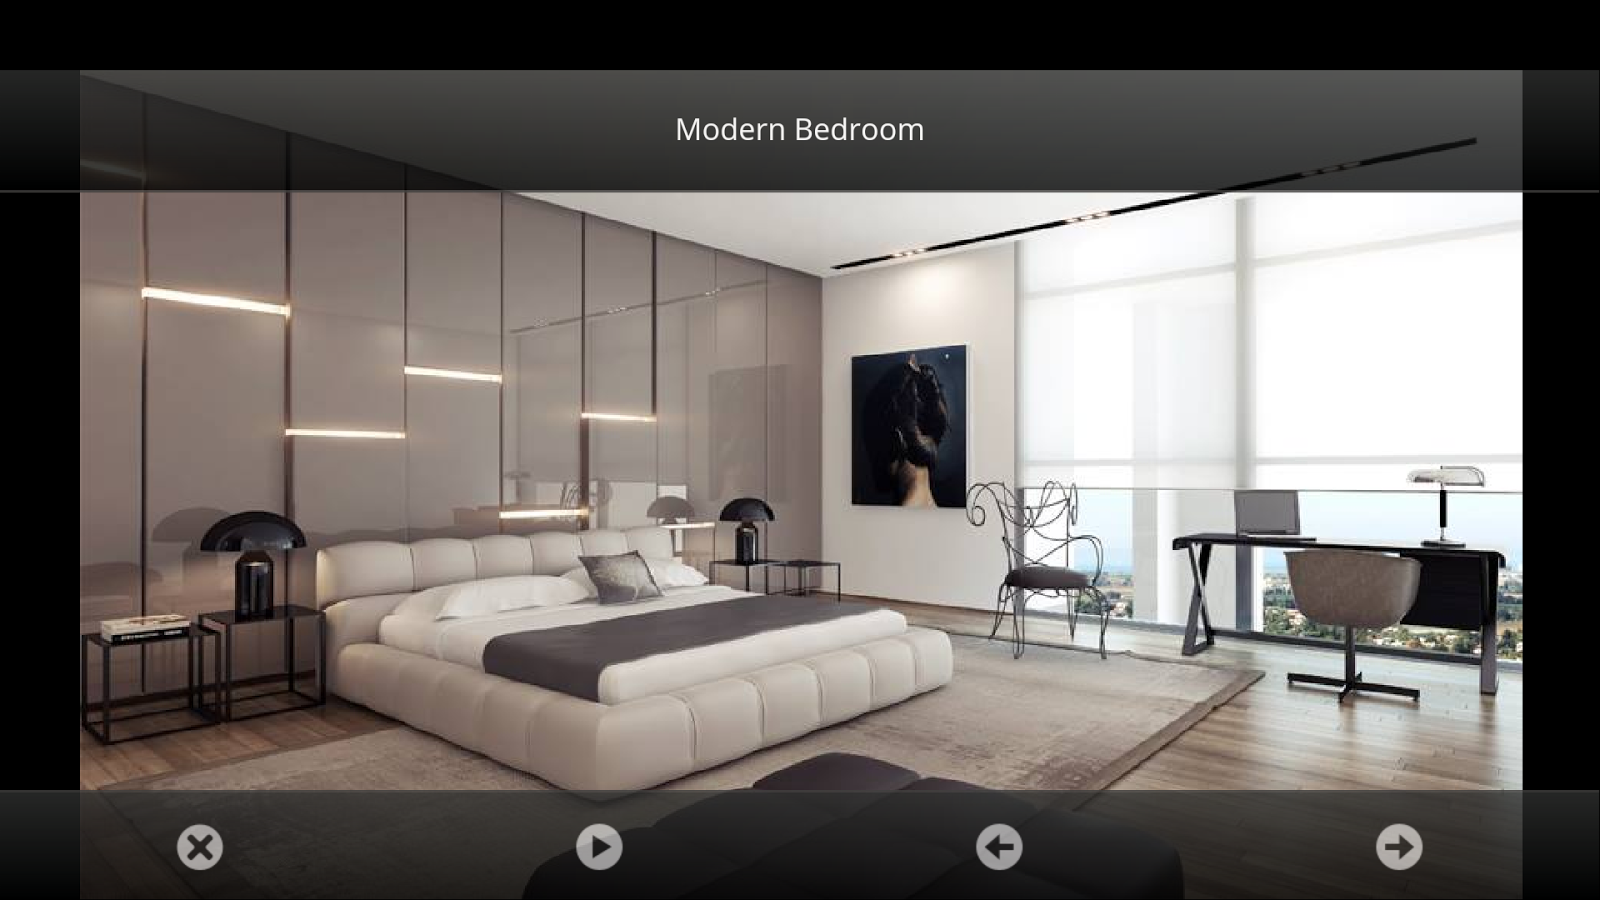 Bedroom decorating ideas android apps on google play for Sample bedroom designs